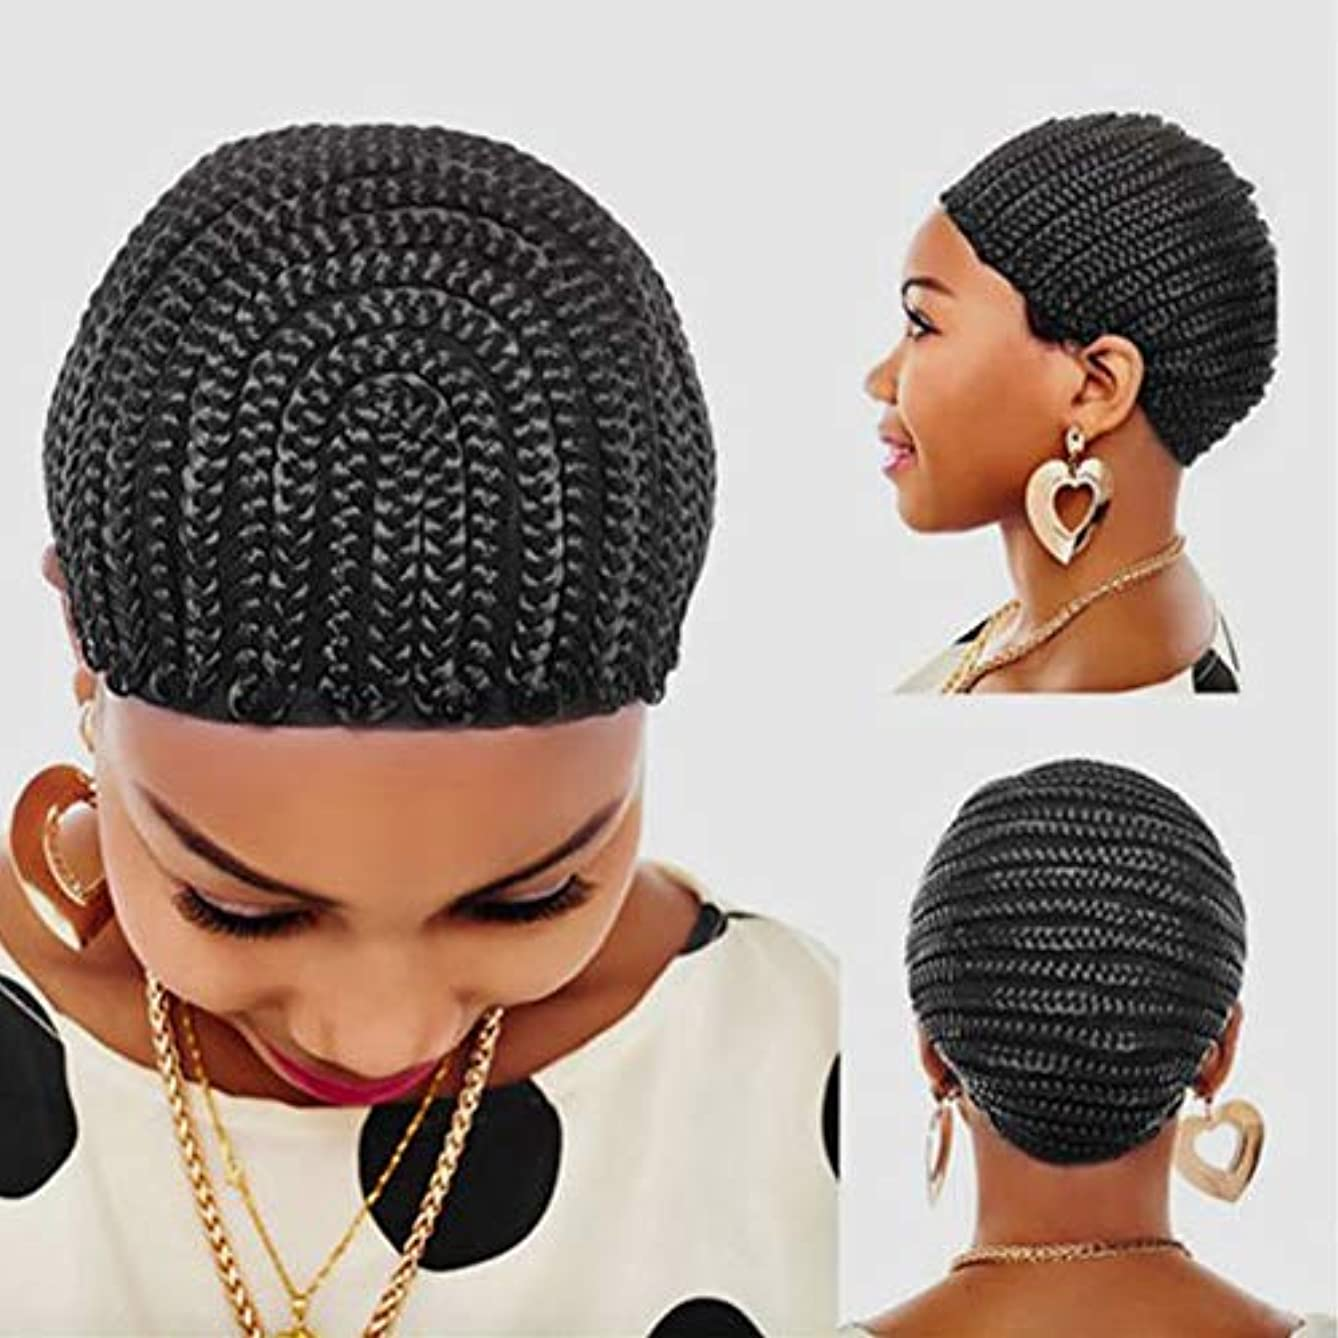 FASHION LADY 1 PC Braided Cap Crochet Braided Wig Caps, Cornrows Cap for Easier Sew in Hair Weave Black Color Braiding Wig Weaving Caps with Braids for Making Wig